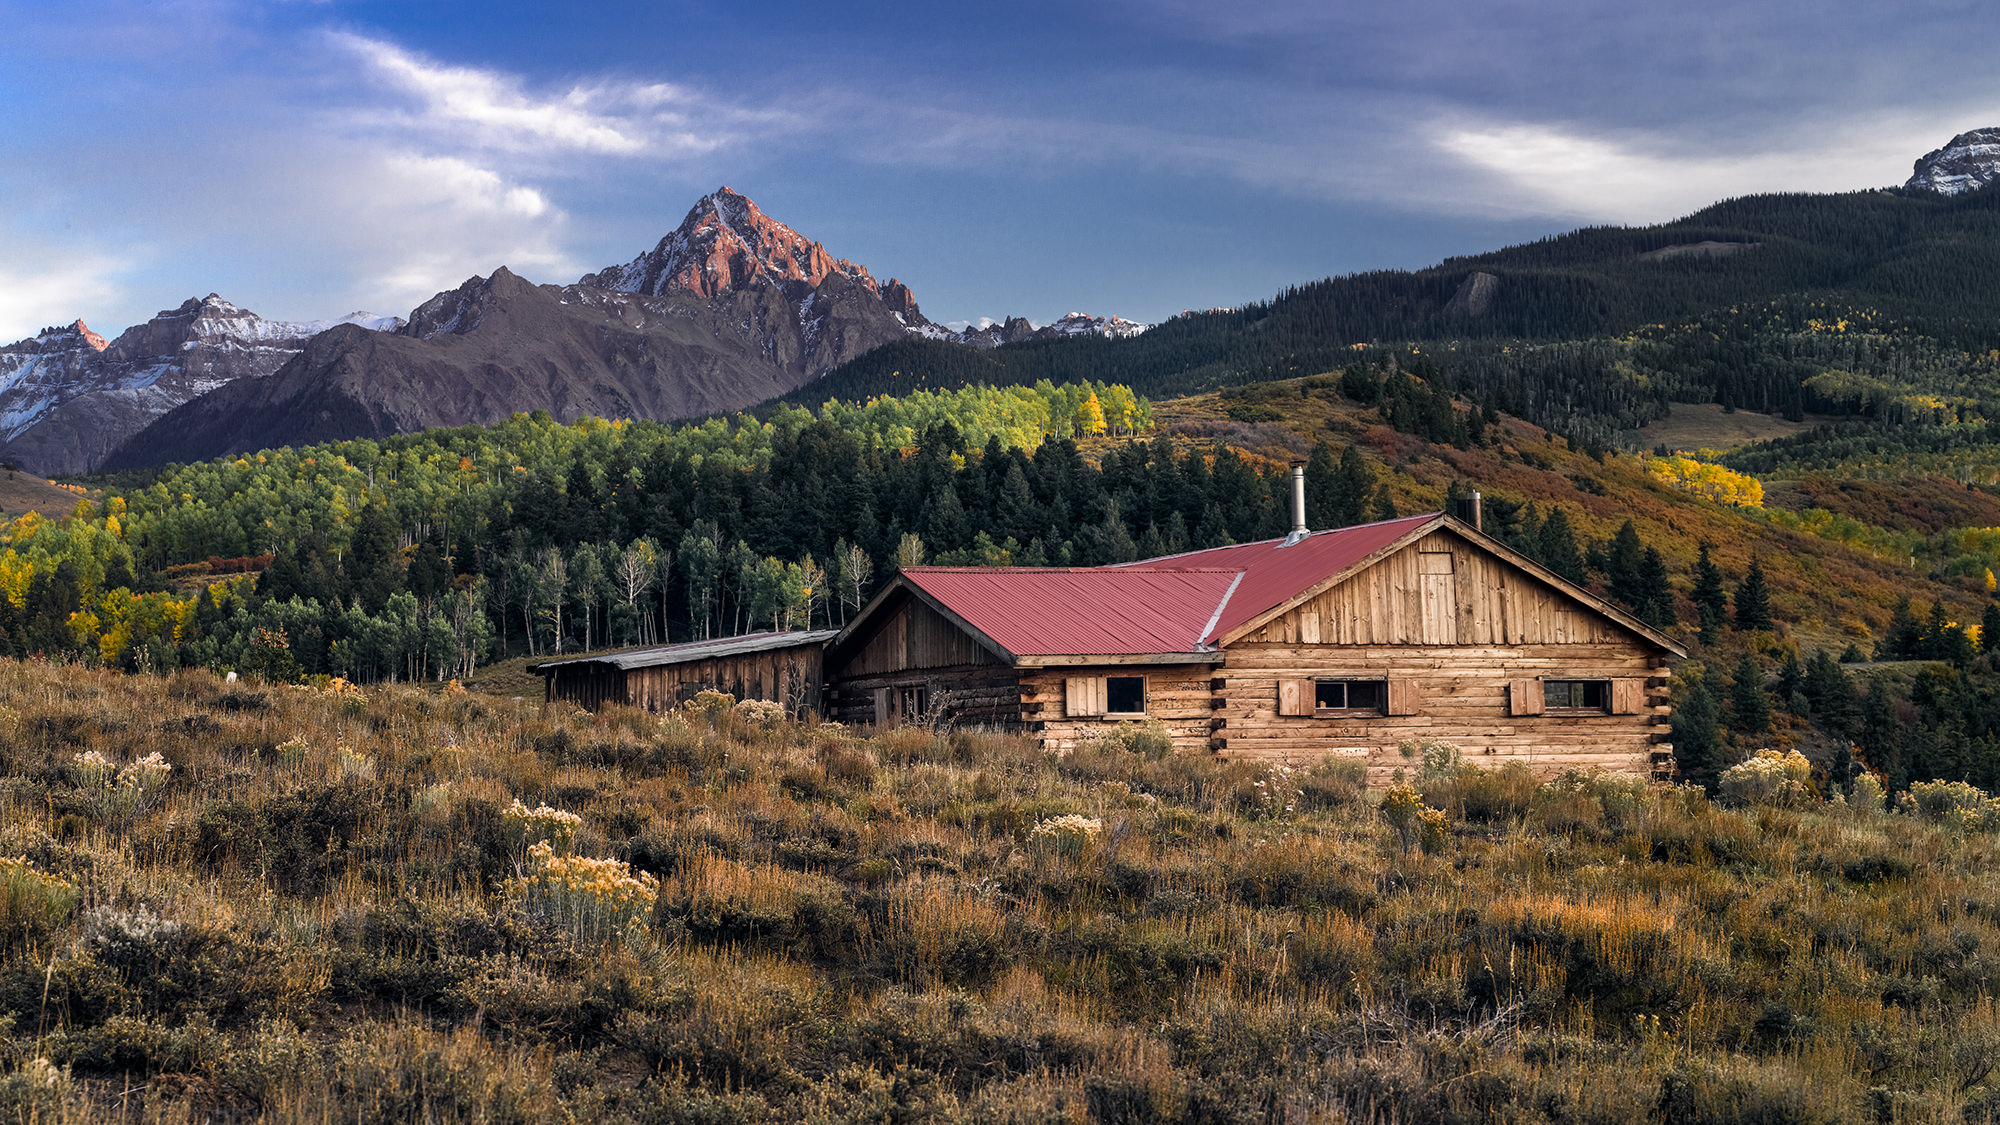 HOUSE ON THE RANGE - Near Ridgway, CO